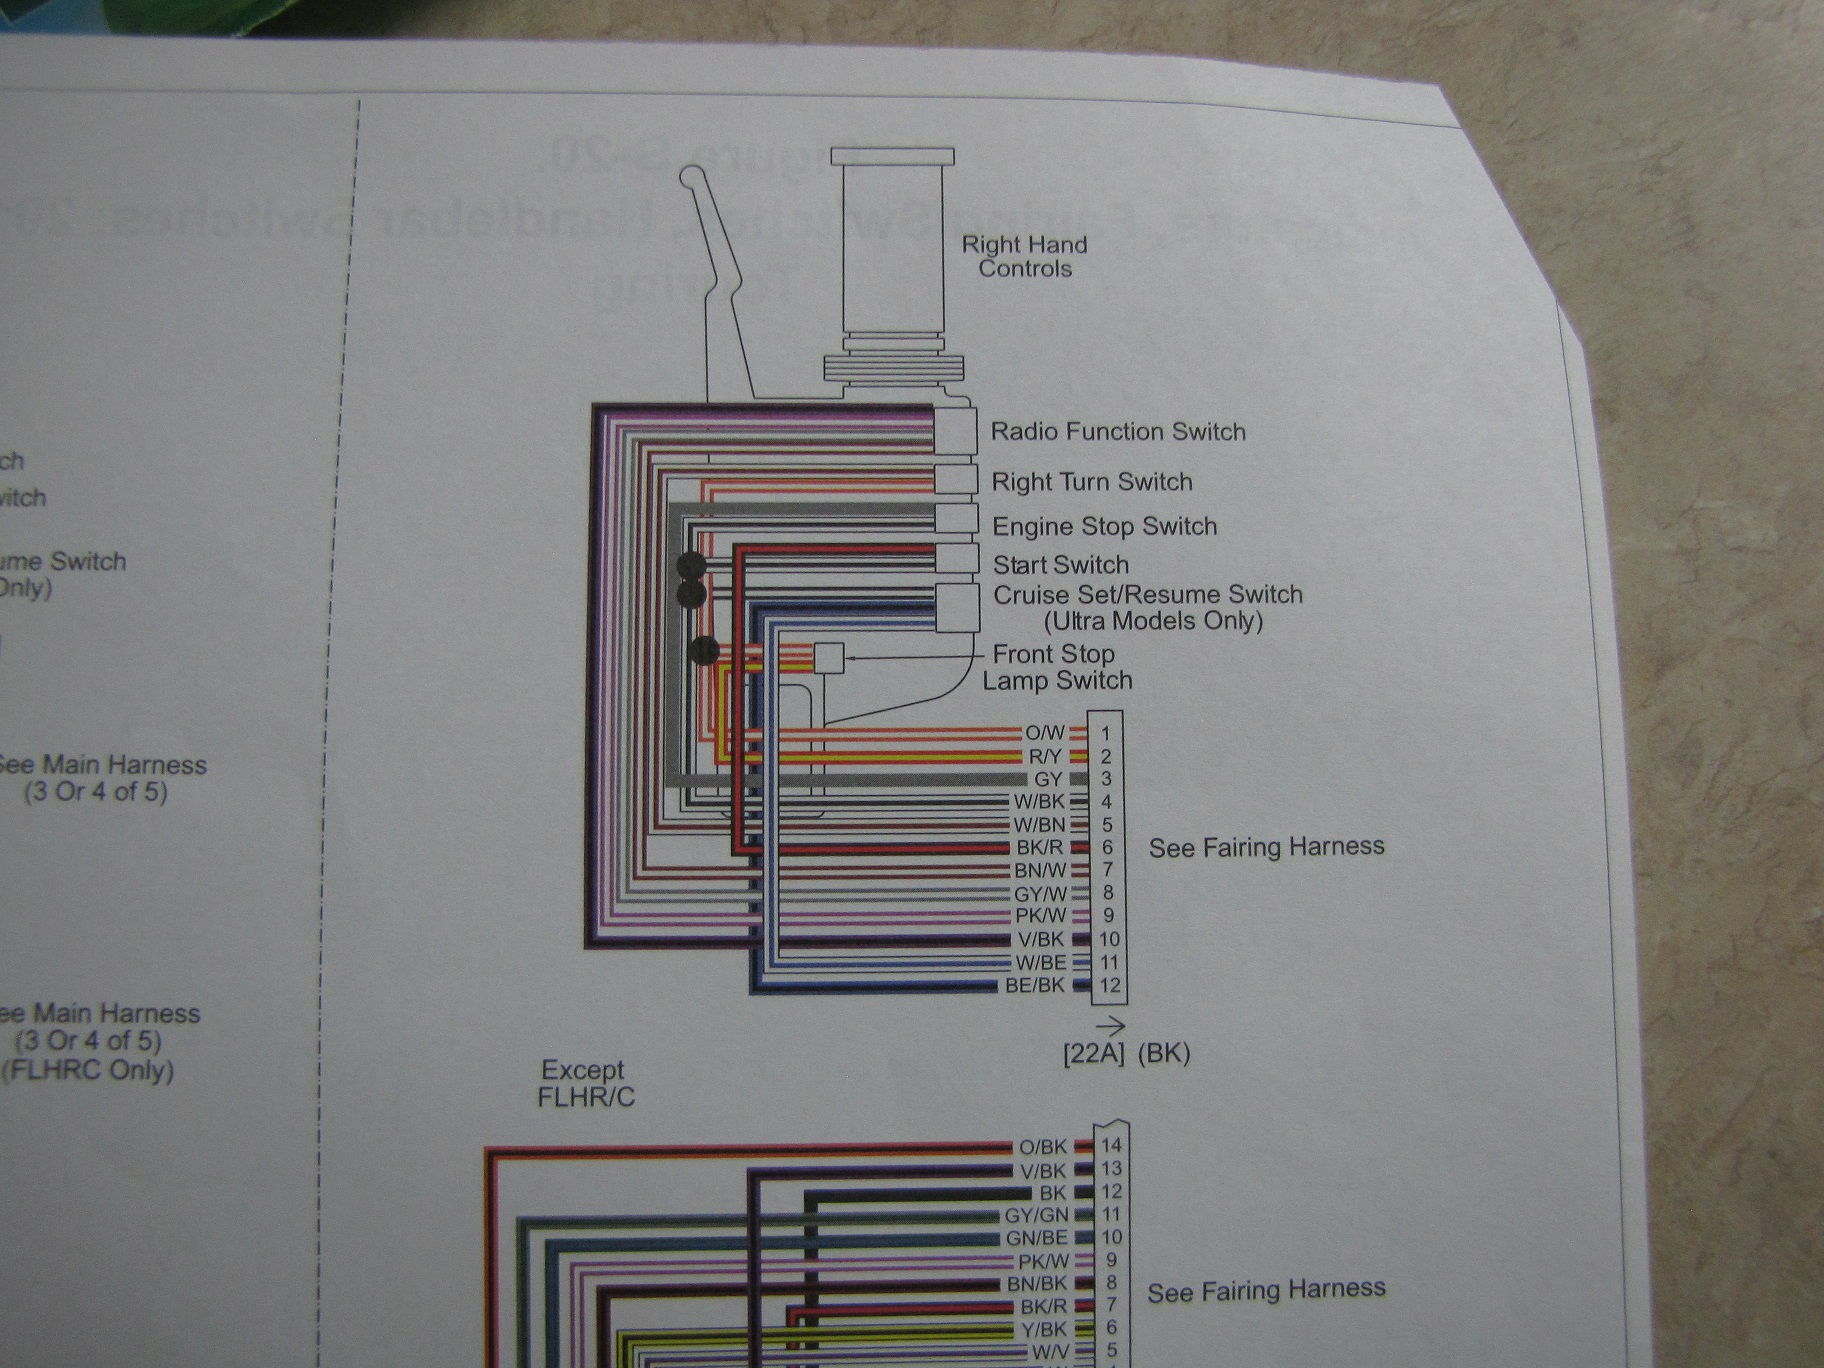 street glide radio wiring diagram street image wiring diagram radio harley 2014 the wiring diagram on street glide radio wiring diagram